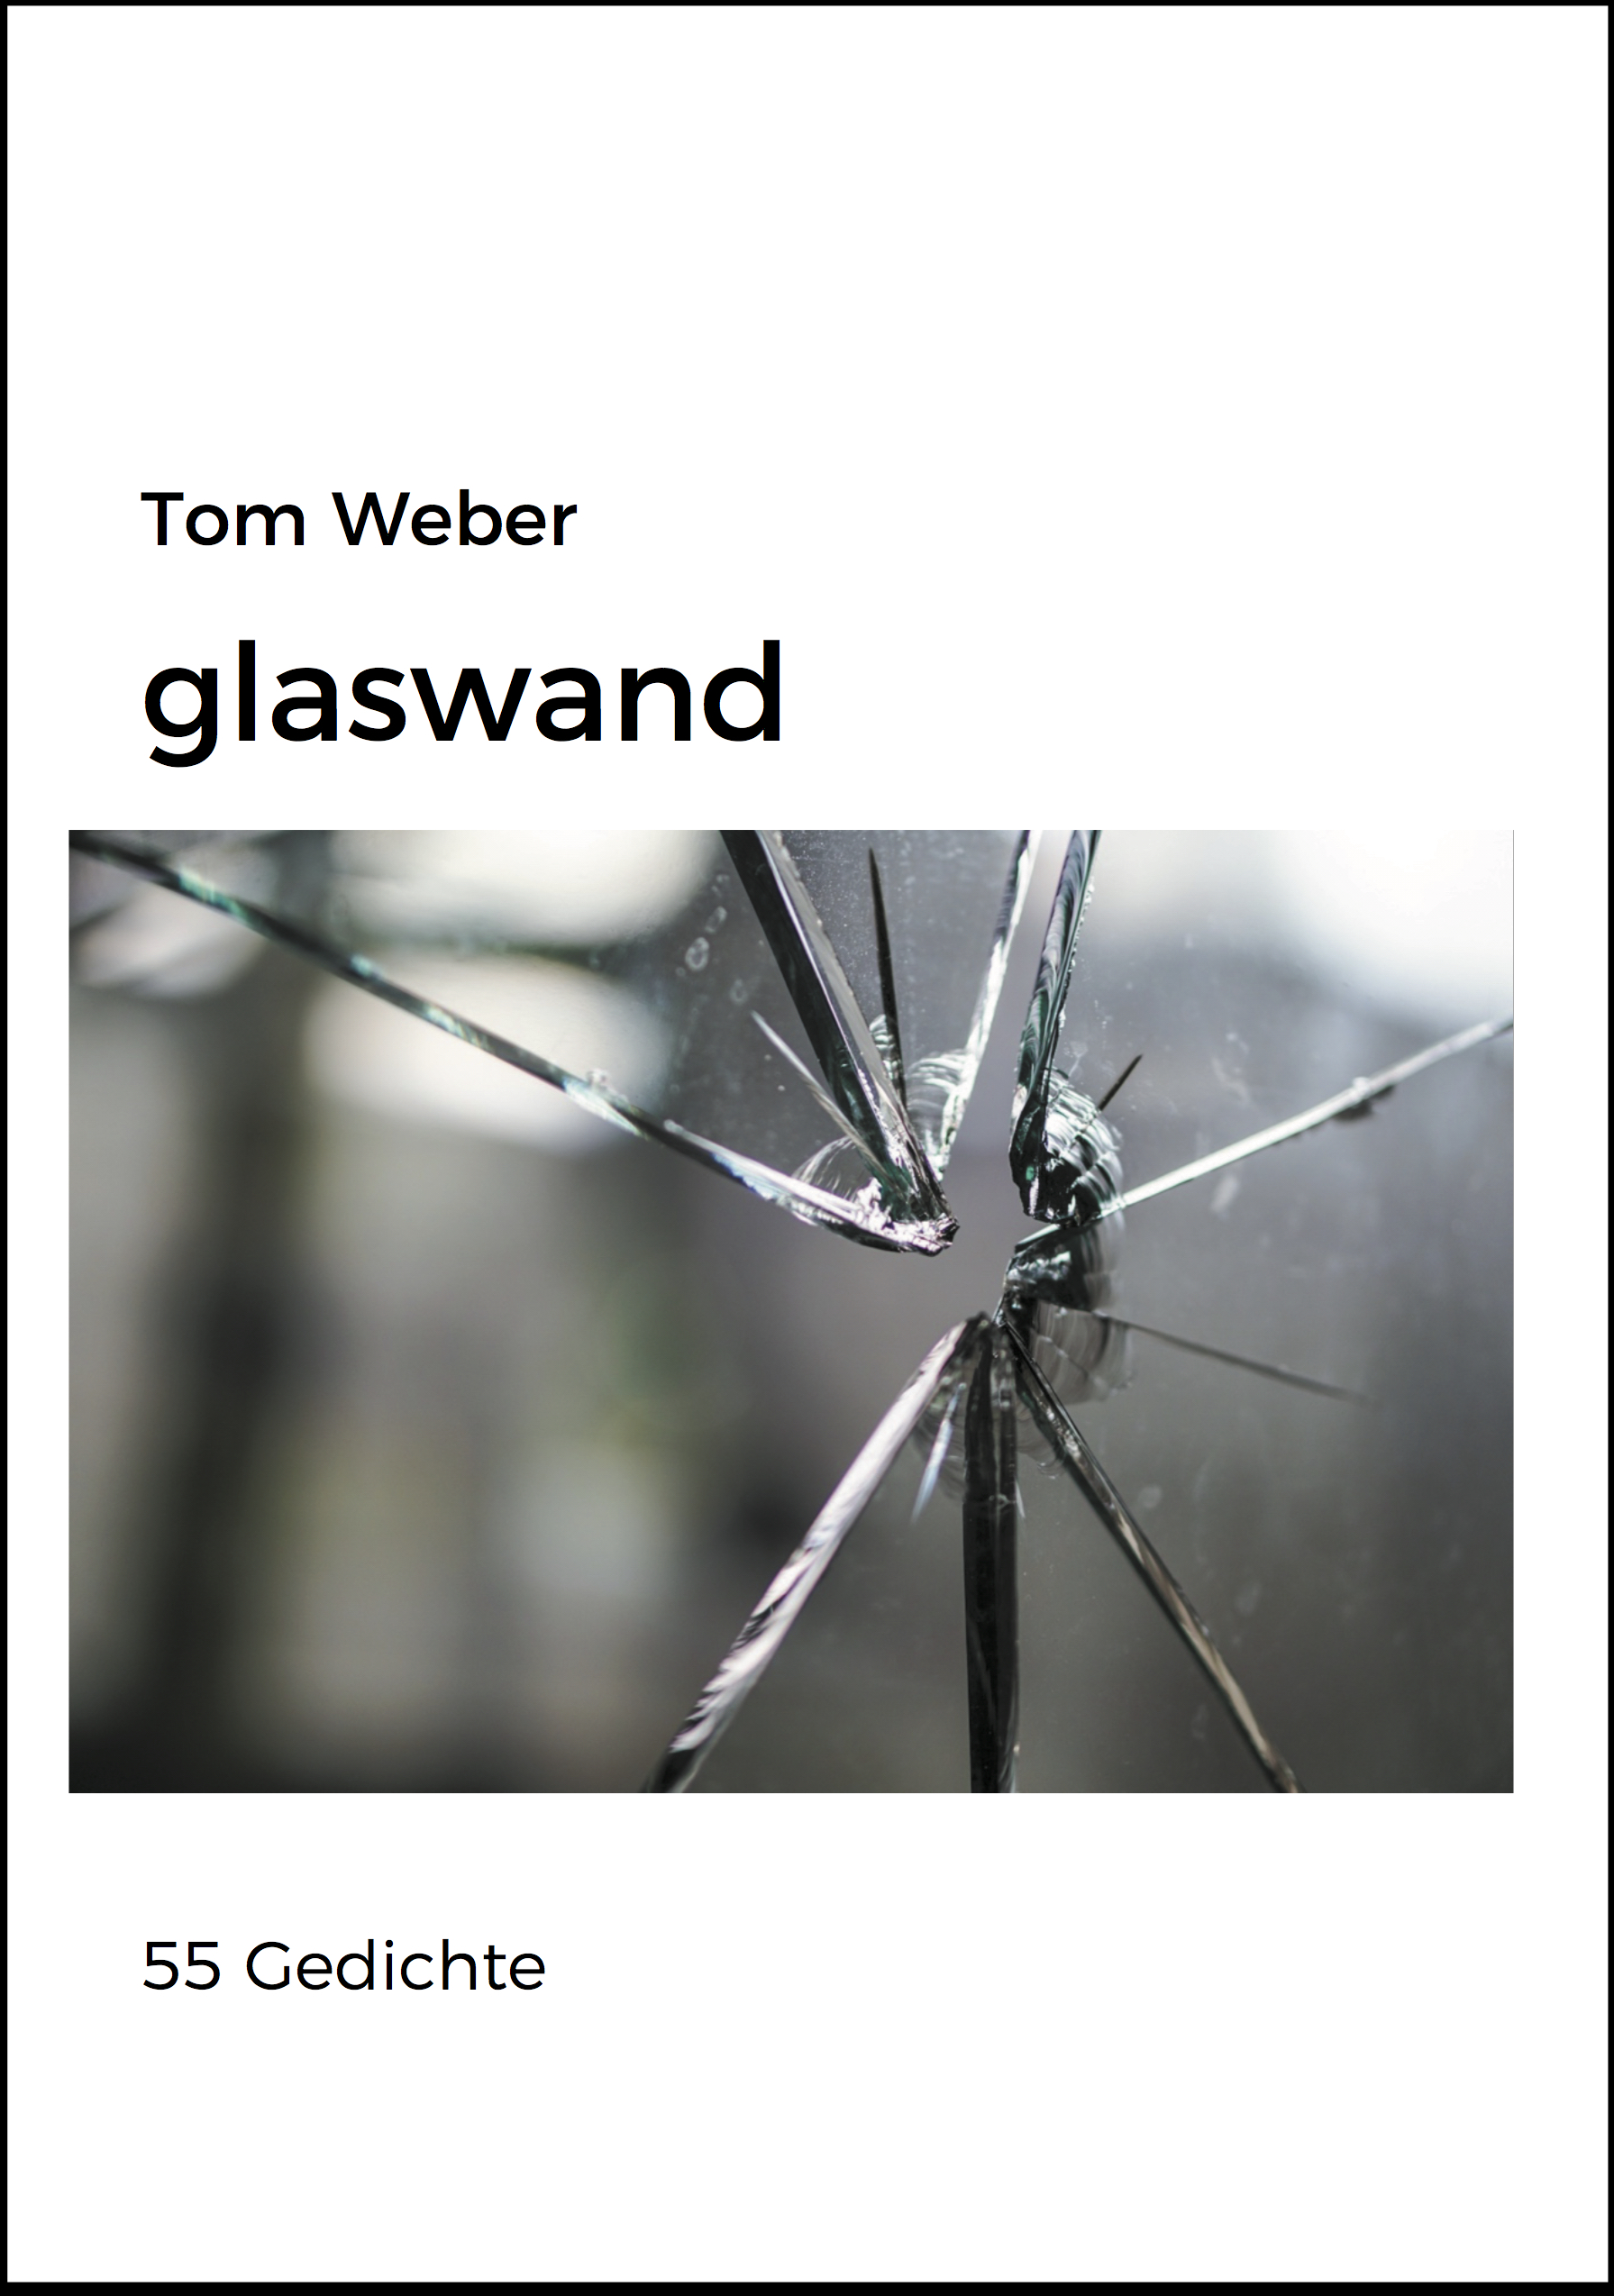 glaswand cover front social media.jpg